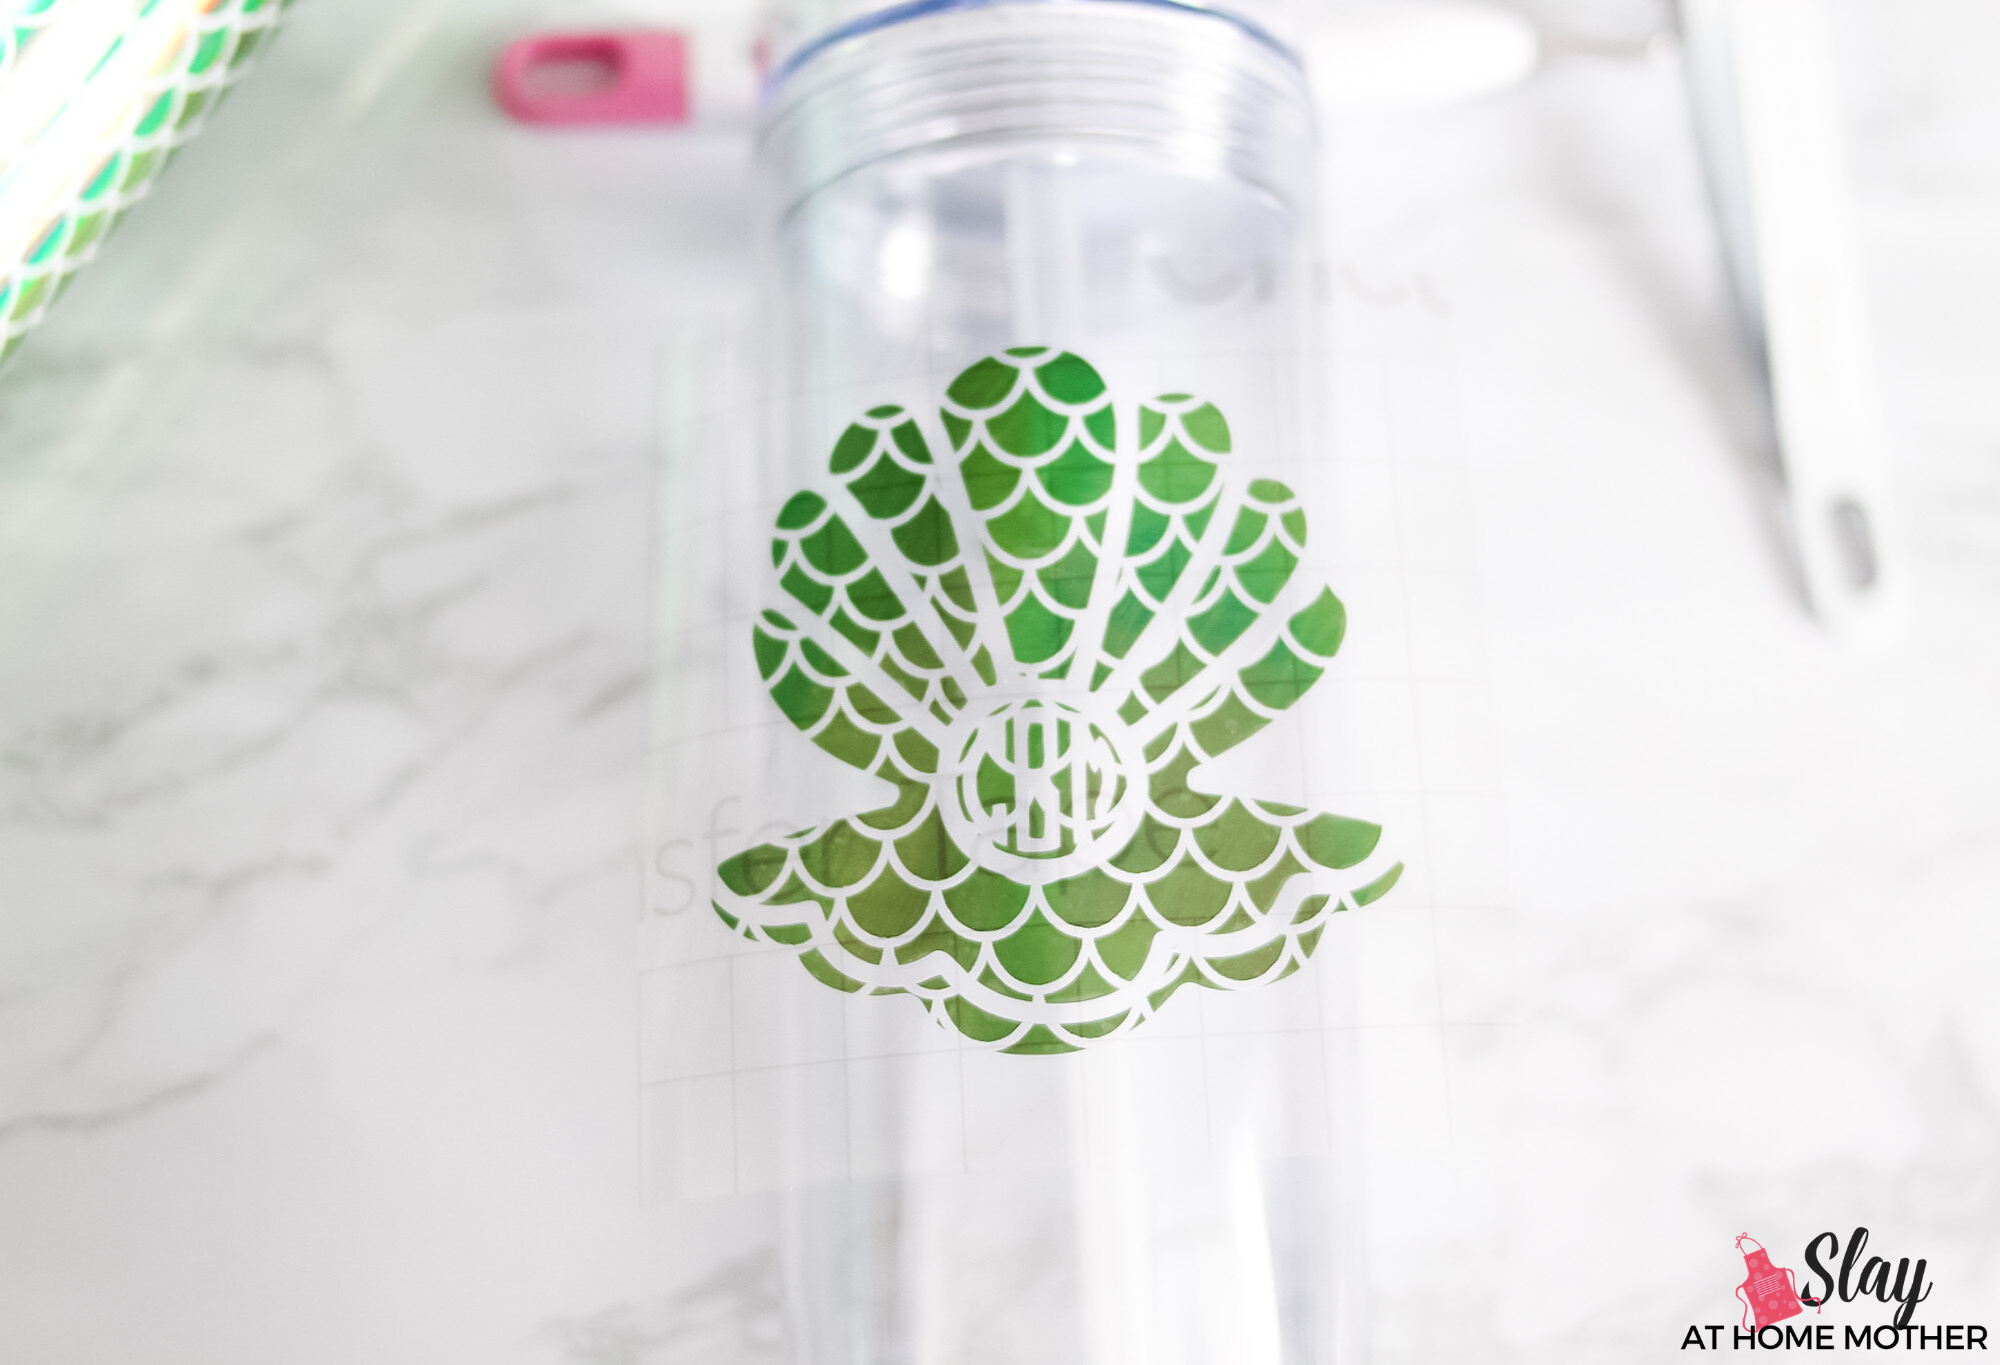 transferring vinyl decal to clear tumbler